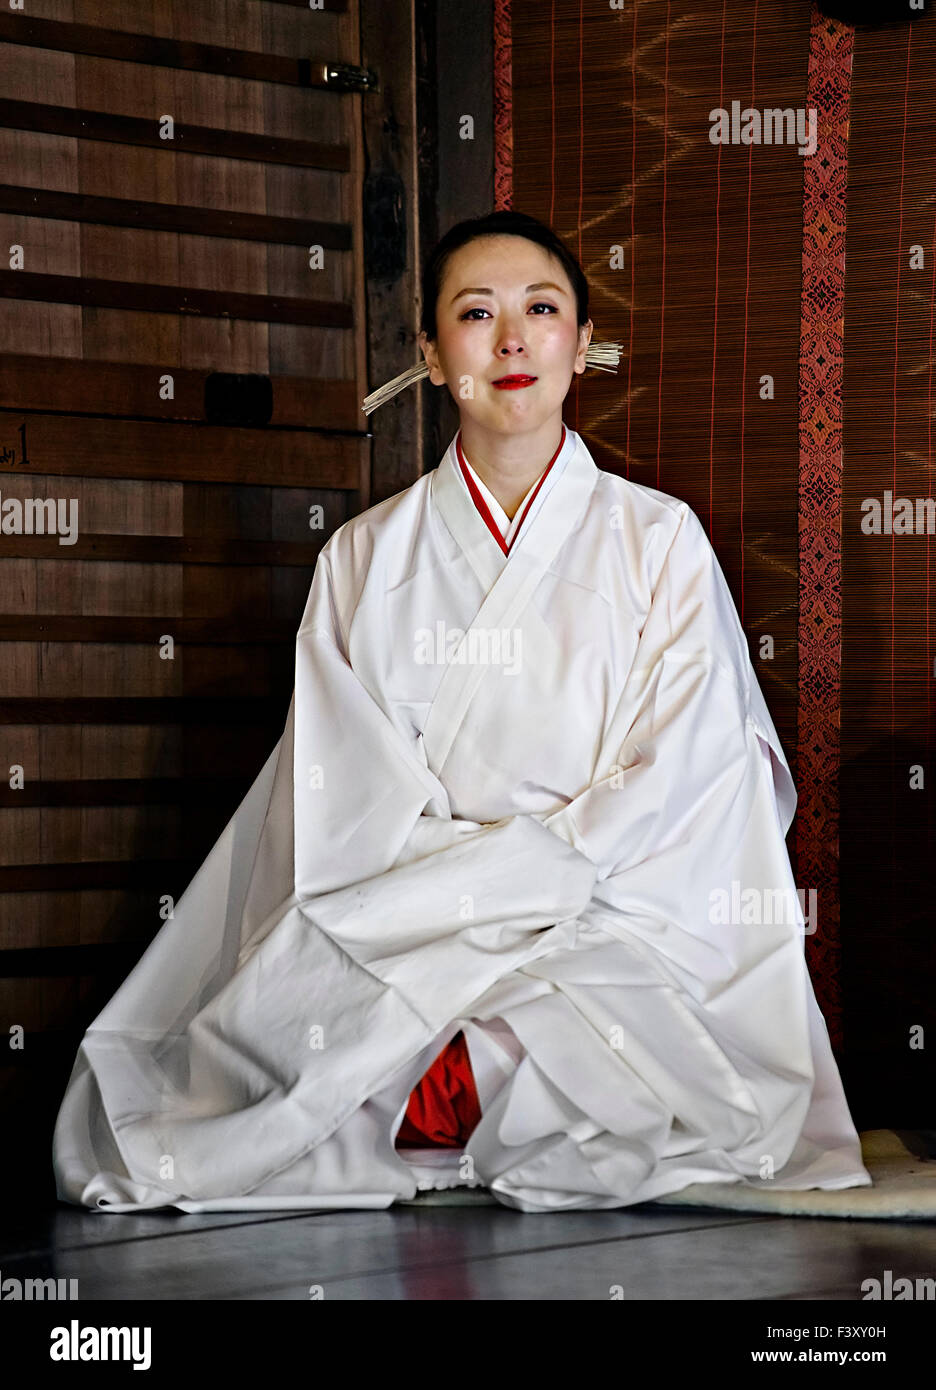 Japan, Honshu island, Kansai, Kyoto, Woman priest called 'Miko'. - Stock Image